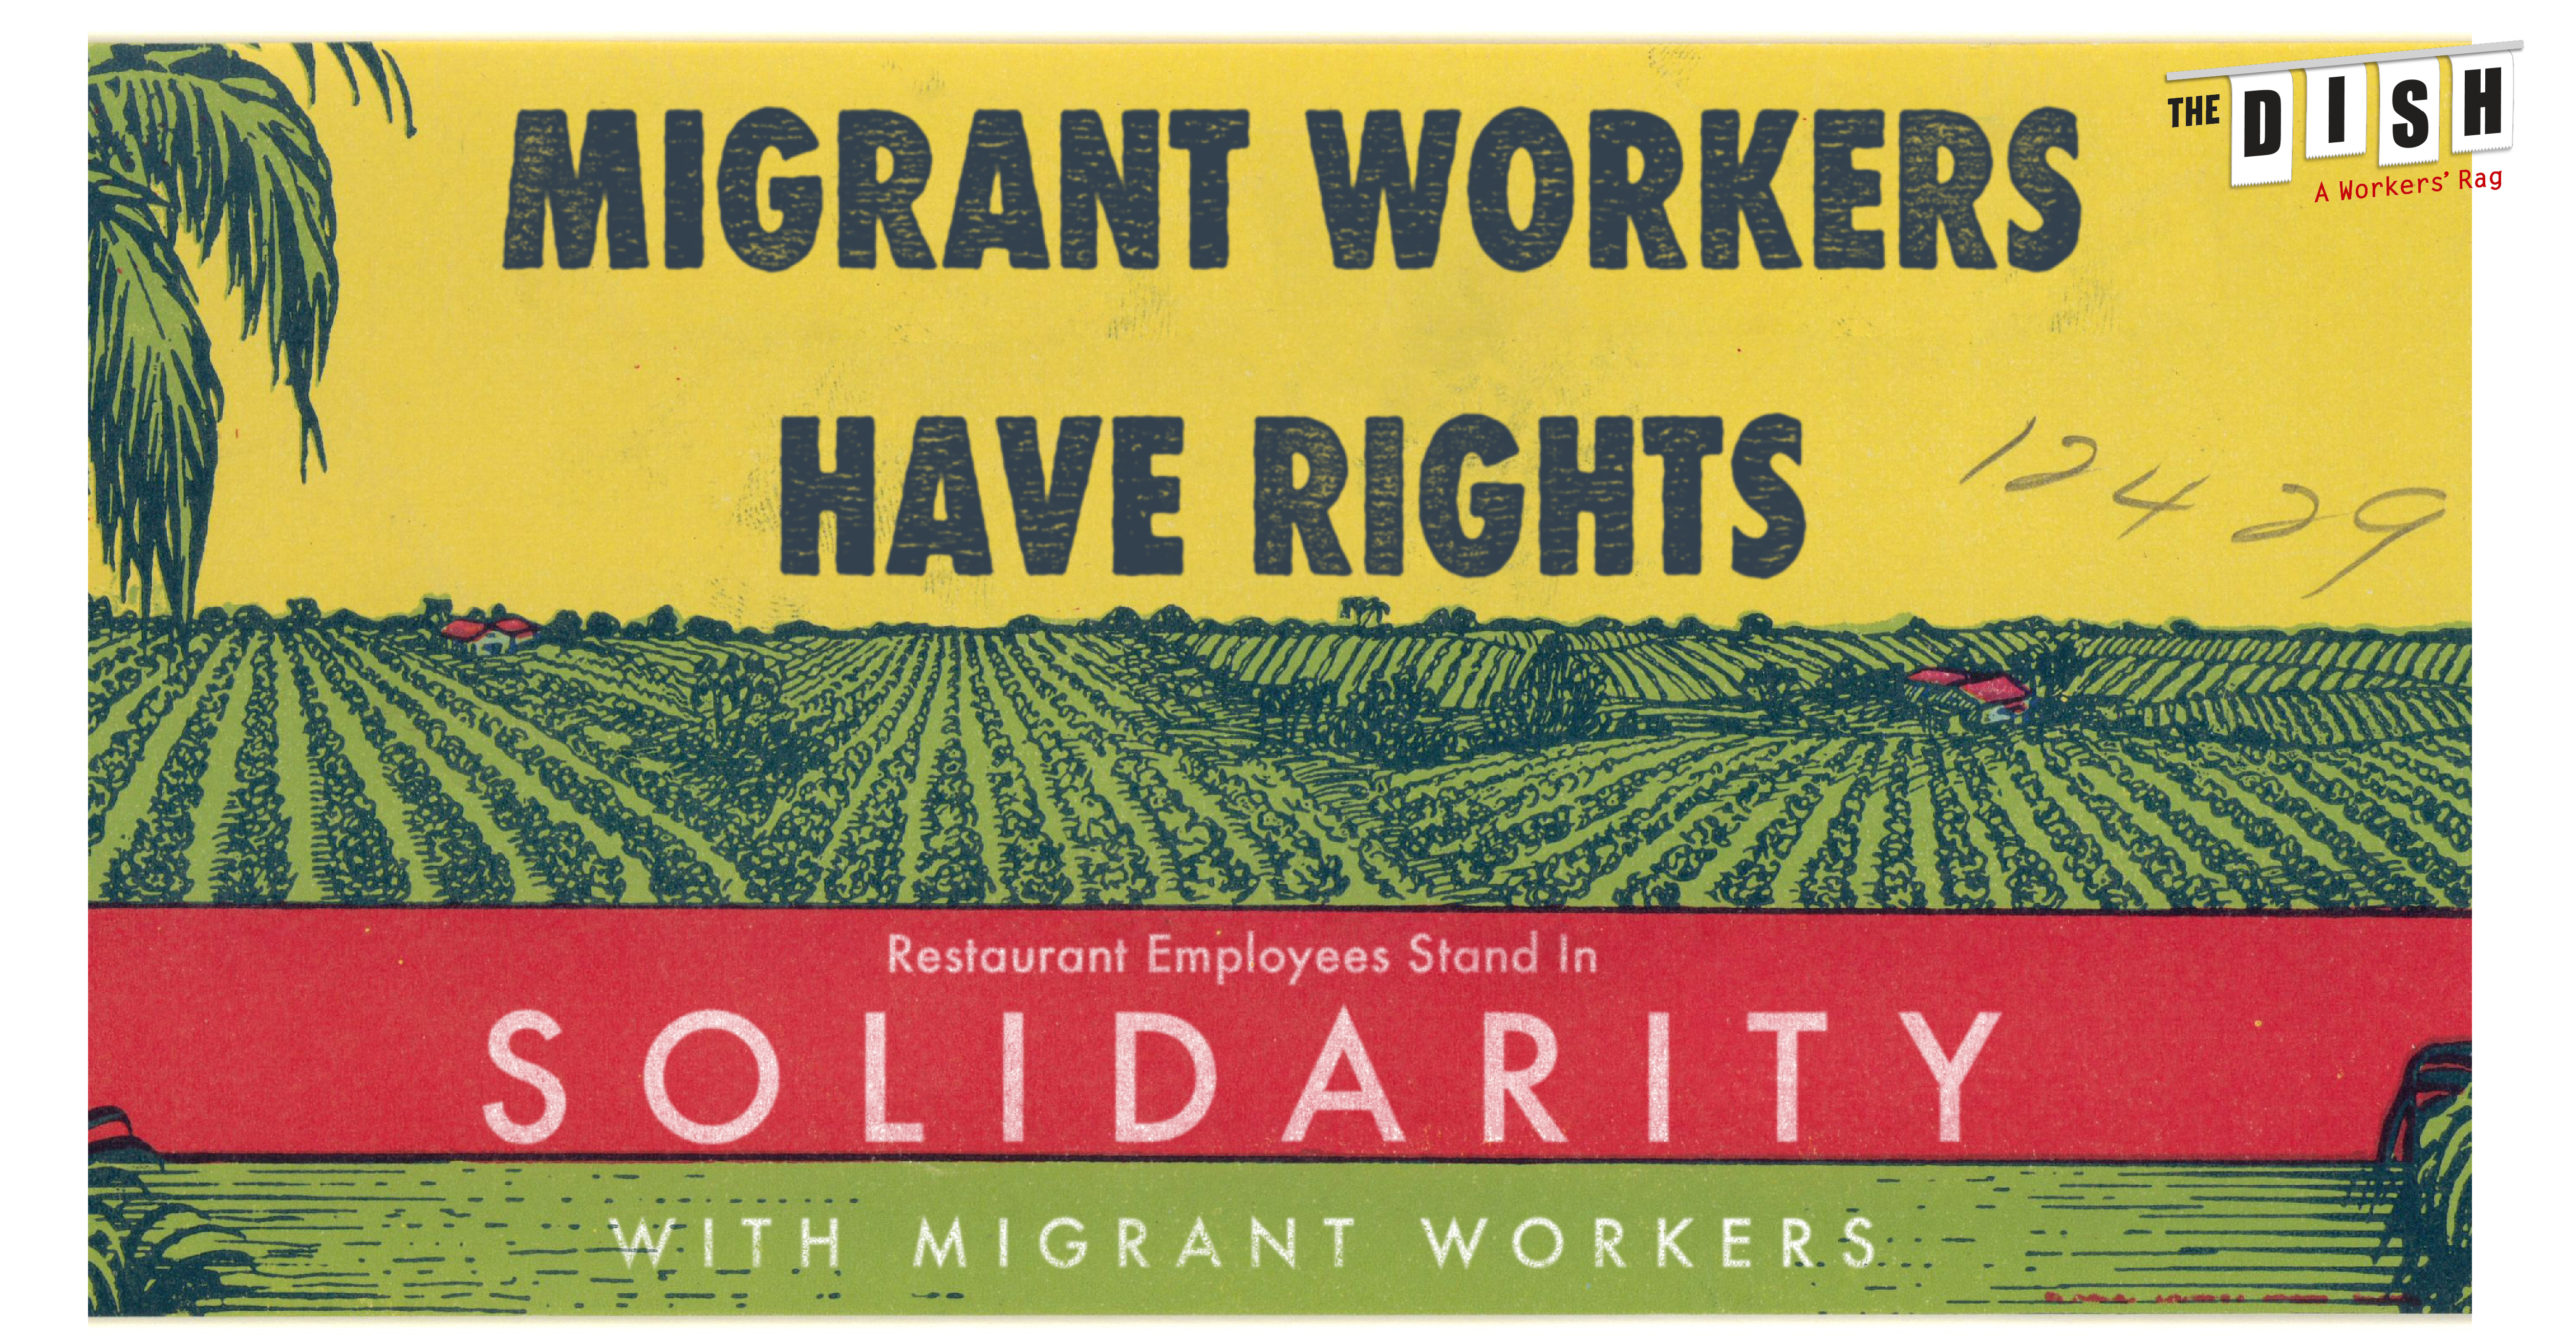 """An graphic of an illustrated farm with text that reads """"Migrant Workers Have Rights Restaurant Employees Stand in Solidarity with Migrant Workers"""""""